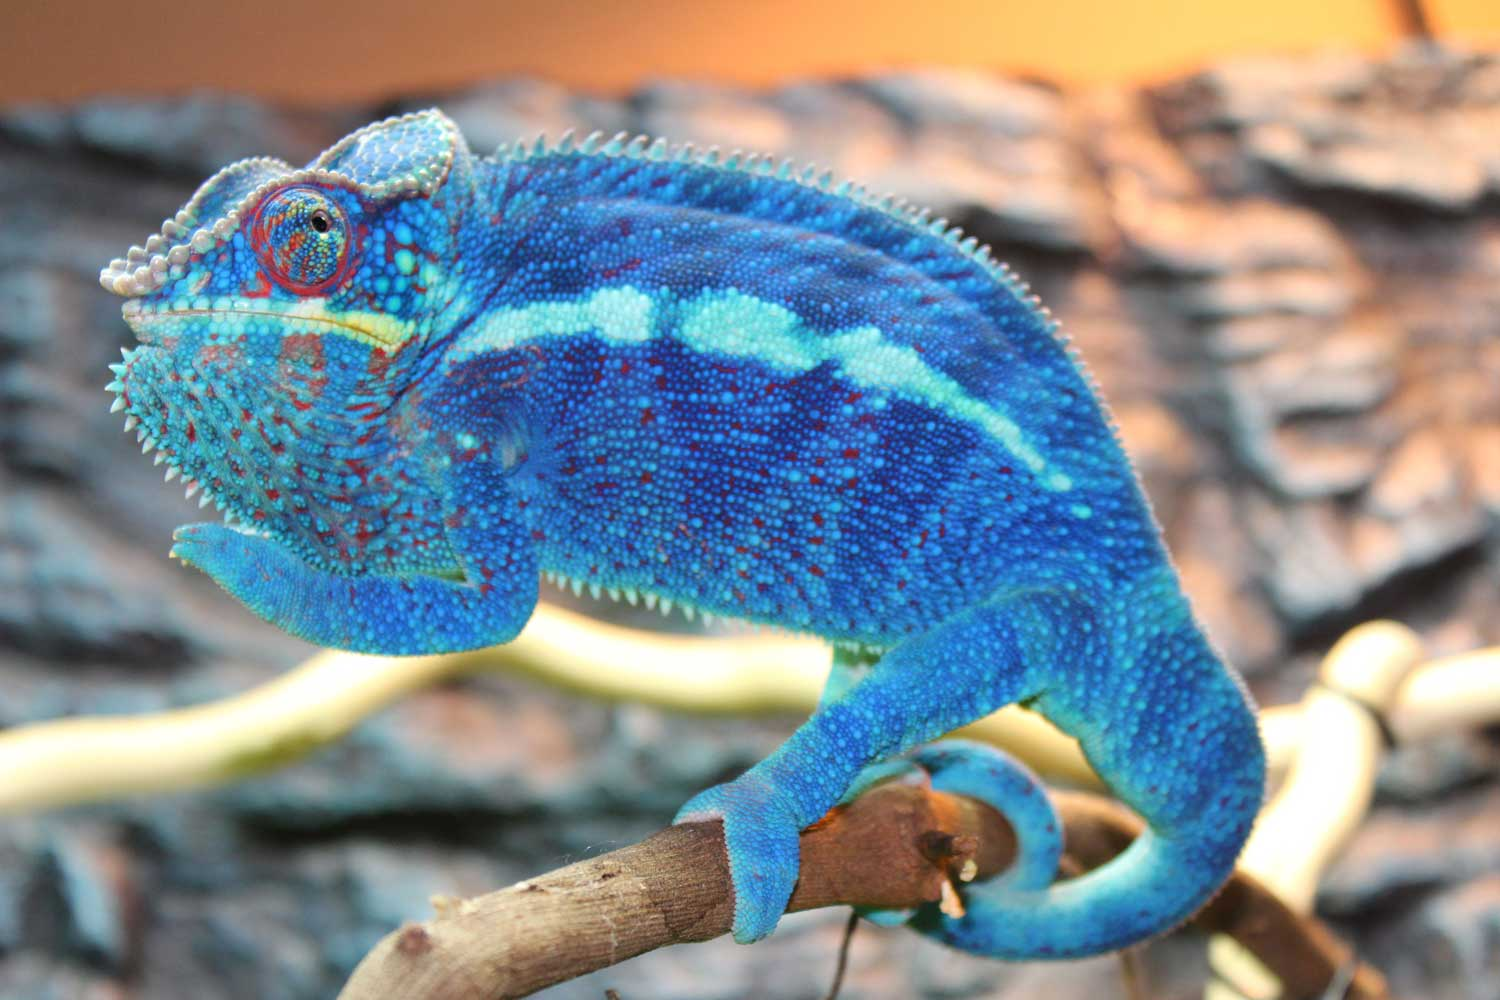 Ambanja Panther Chameleons For Sale - Chromatic Chameleons